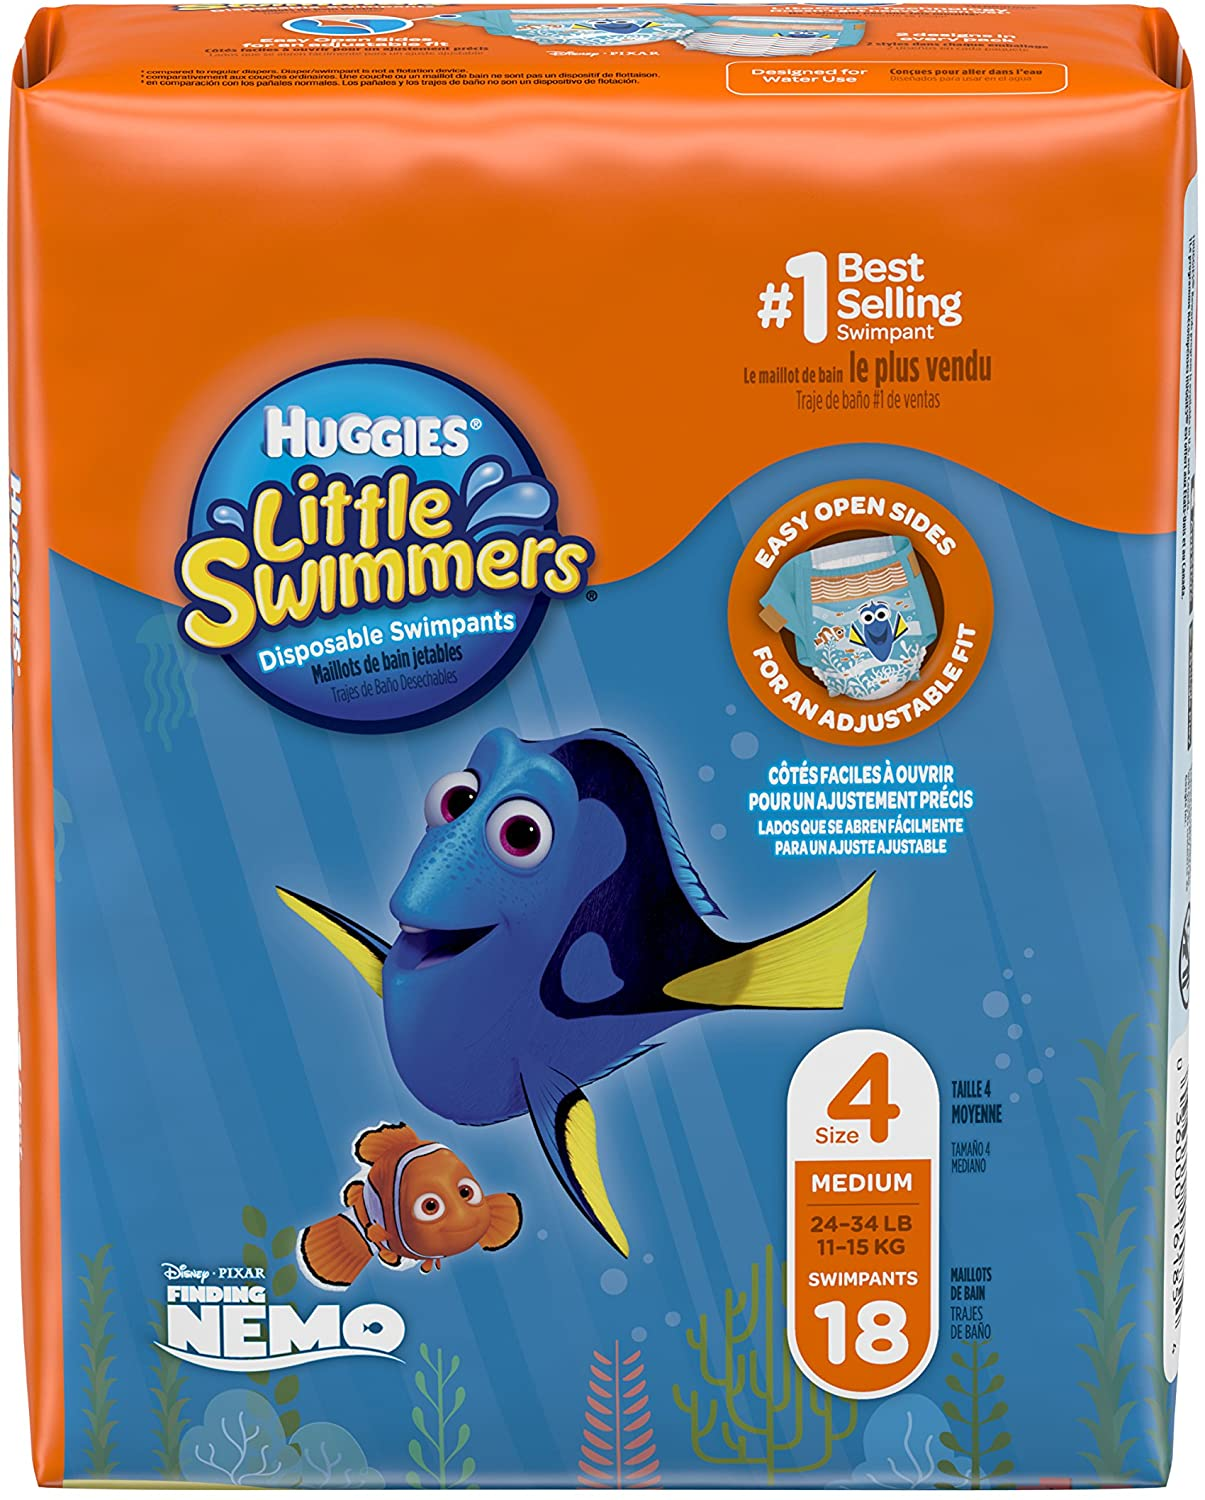 Huggies® Little Swimmers® Disposable Swim Pants - Offspring